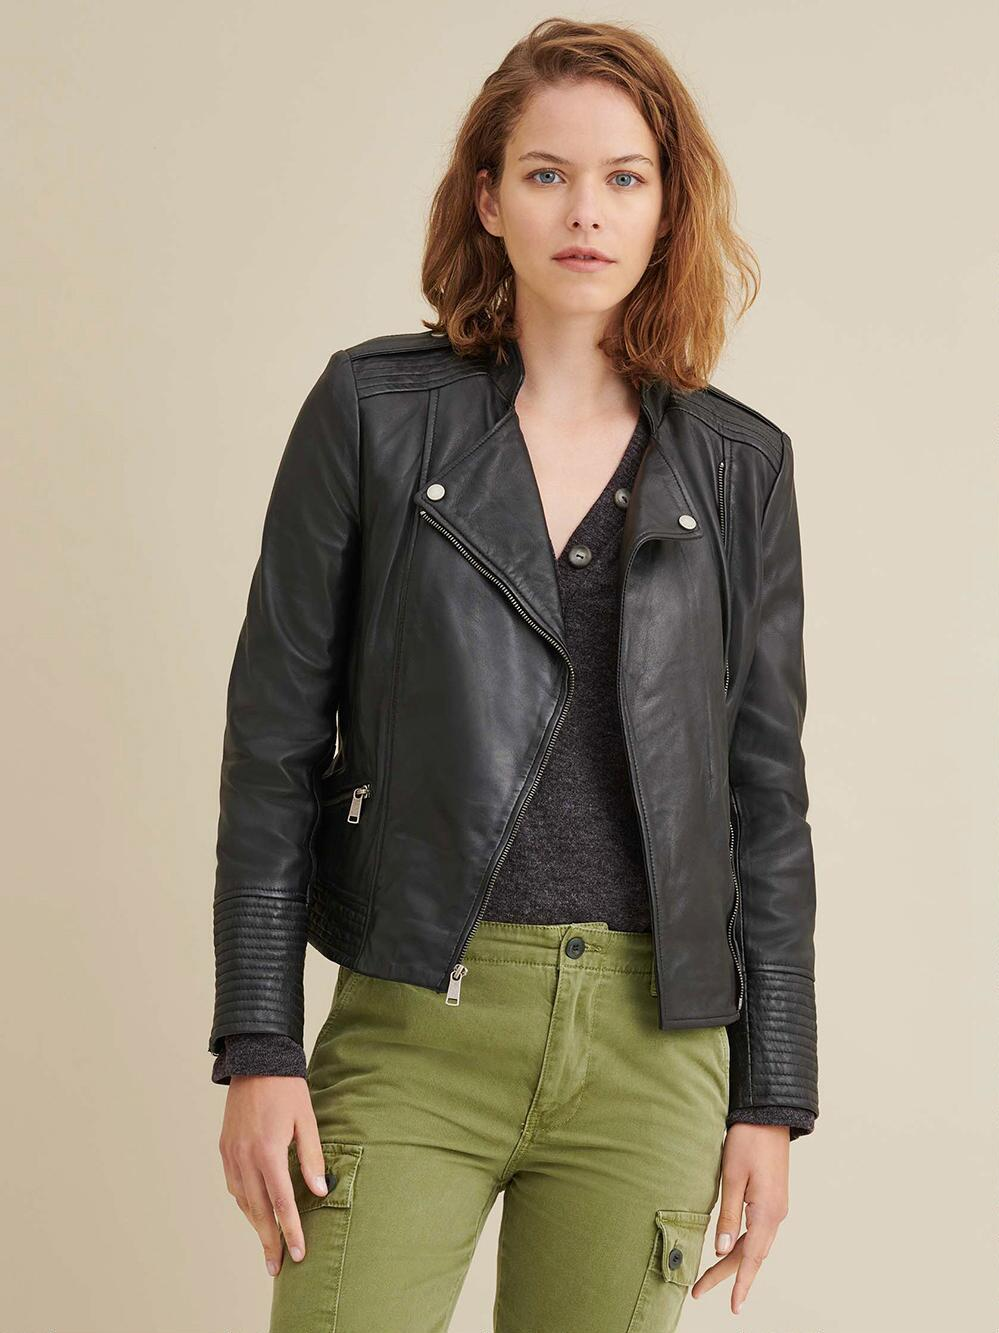 Asymmetrical Leather Jacket for Women